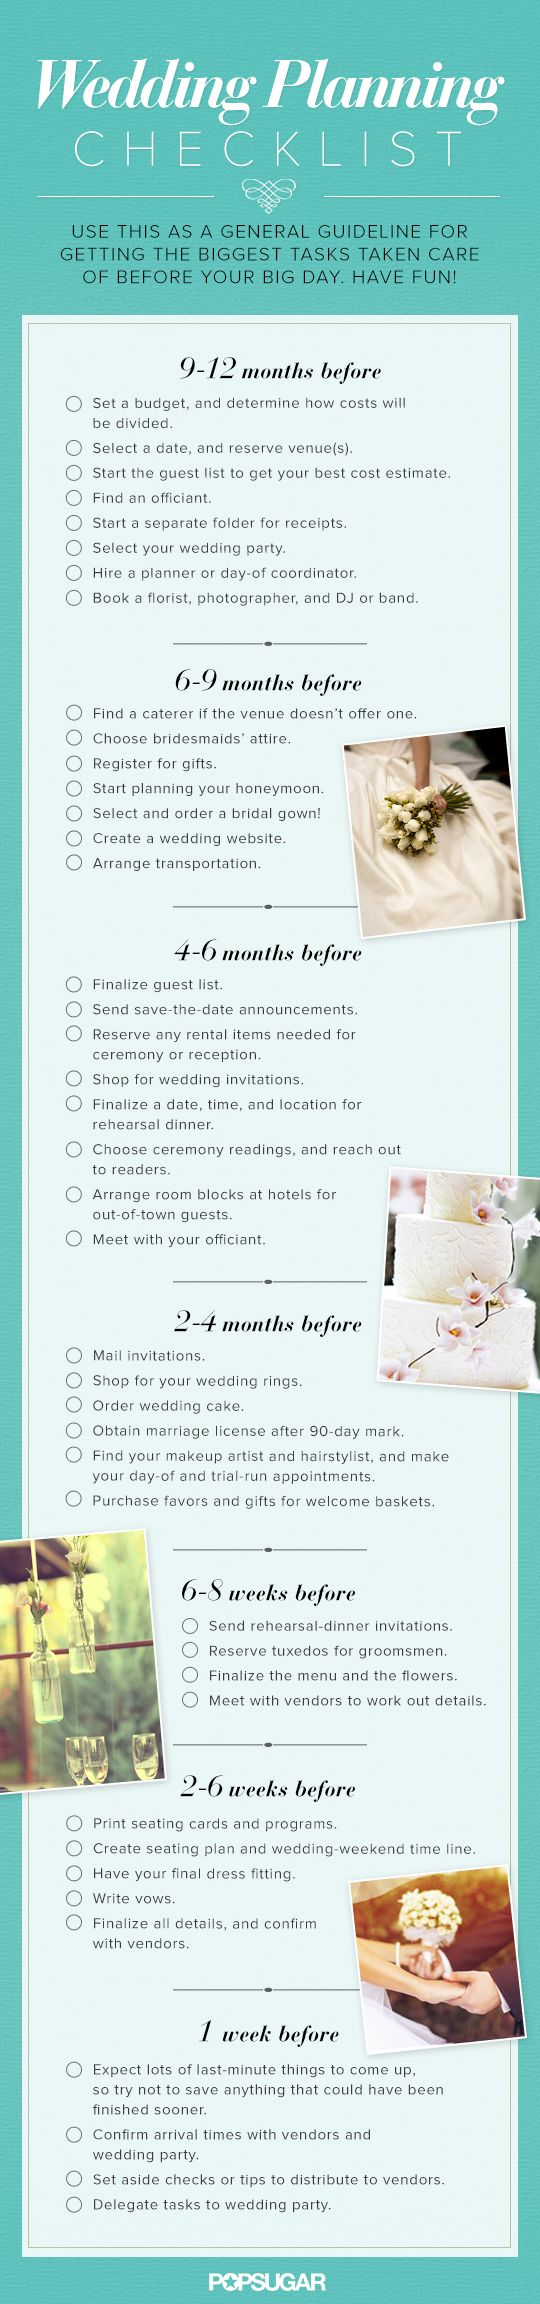 wedding planning checklist spreadsheet free%0A Download the Ultimate Wedding Planning Checklist